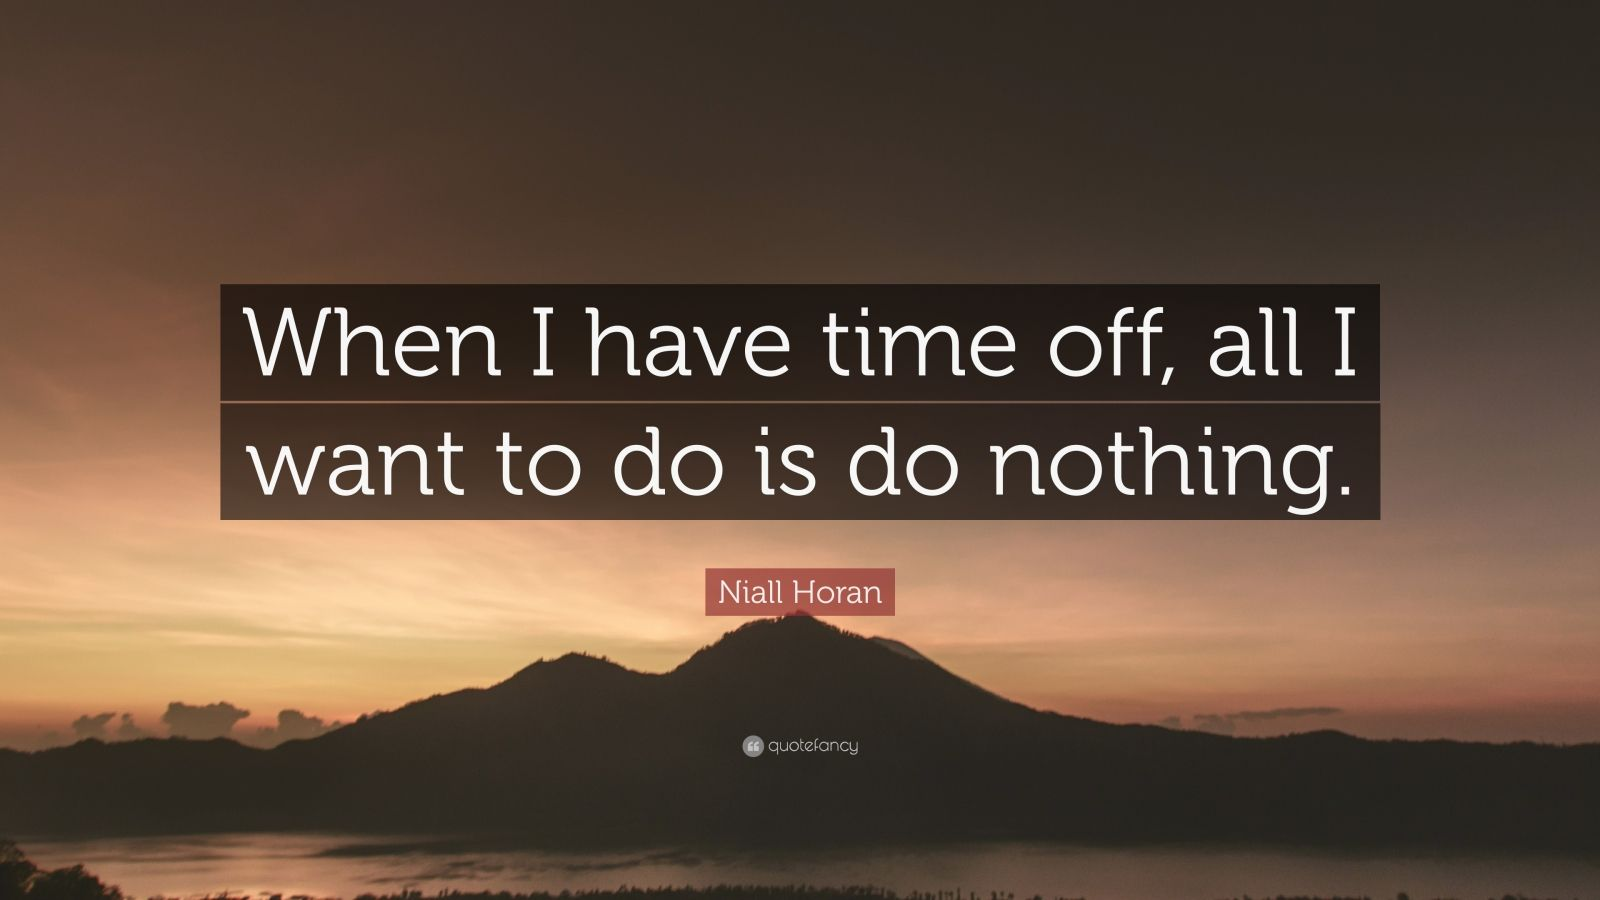 """Niall Horan Quote: """"When I have time off, all I want to do is do nothing."""""""